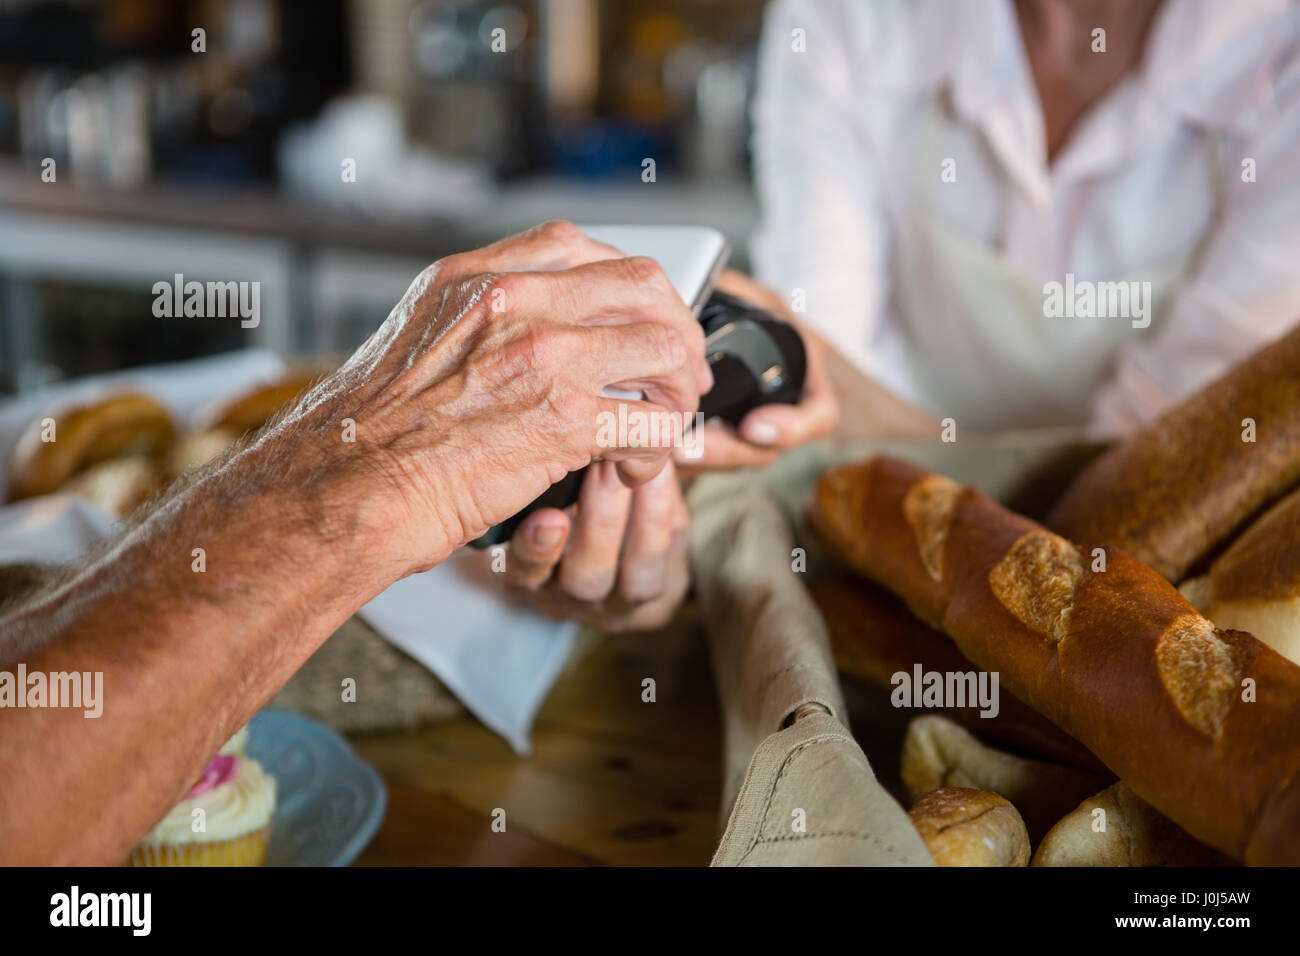 Customer making payment through NFC technology on mobile phone in café - Stock Image